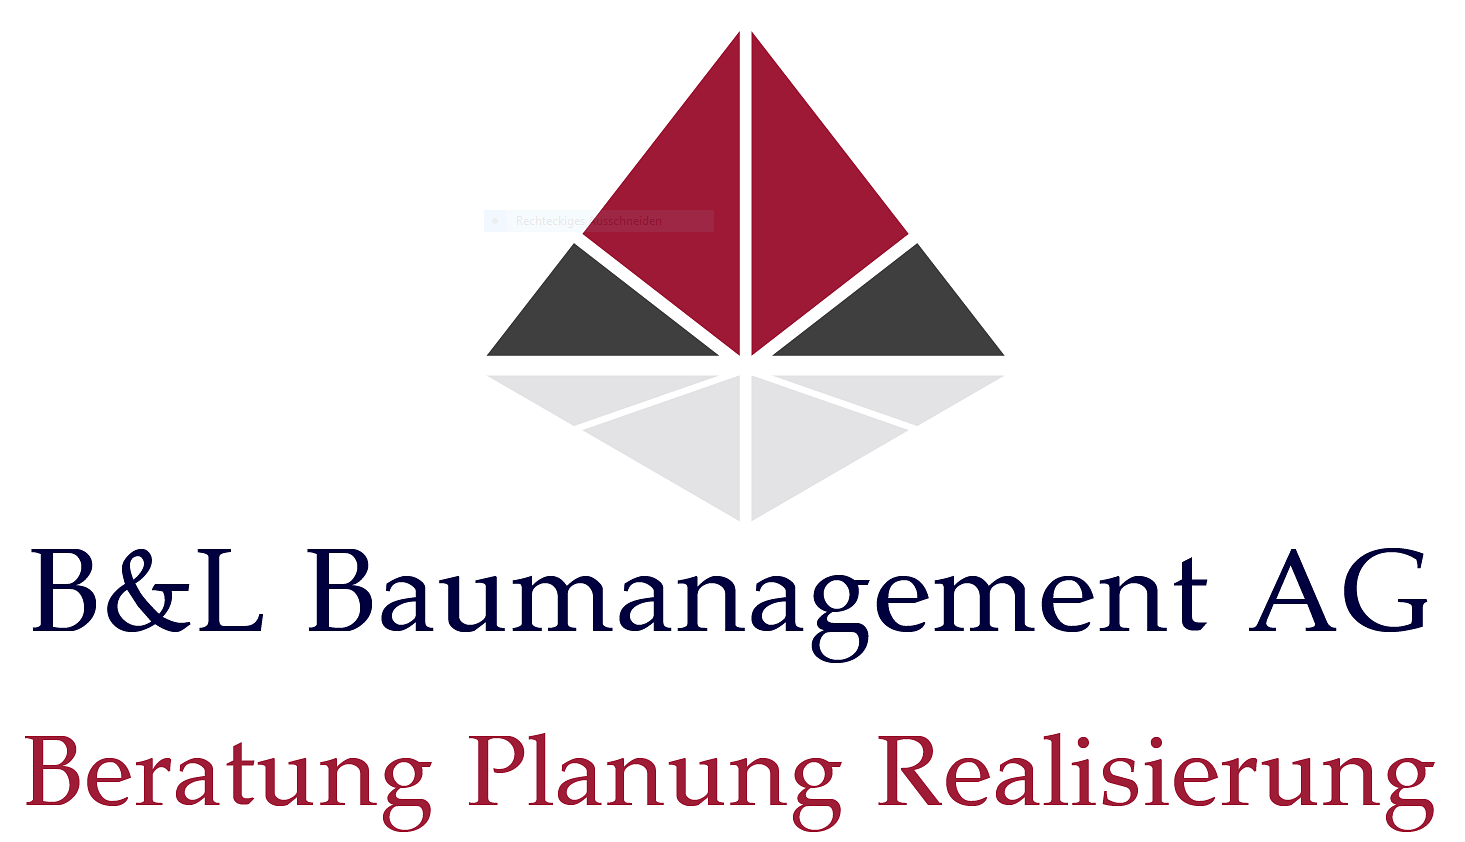 B&L Baumanagement AG